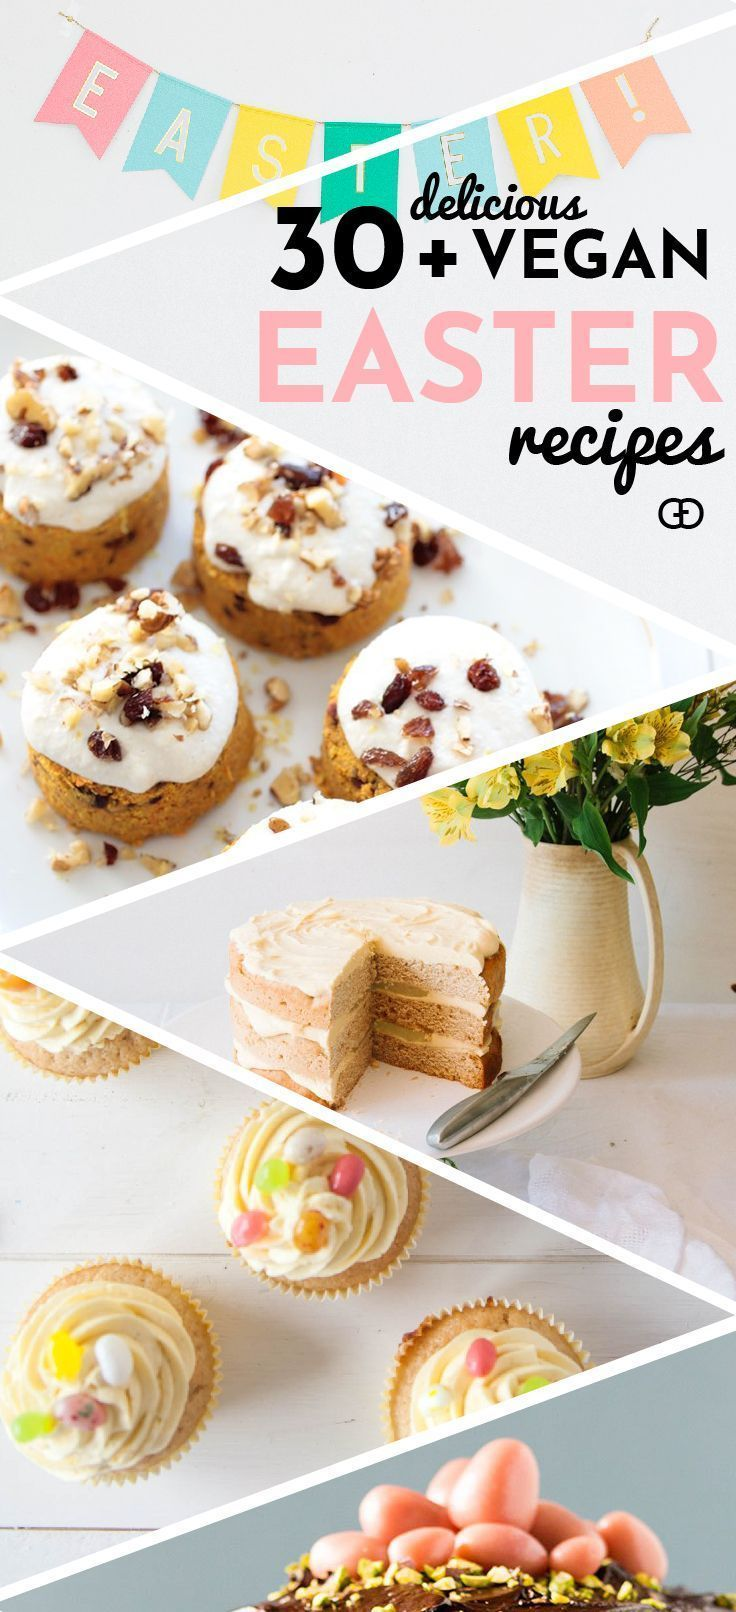 Vegan Easter Recipes Over 30 Eggcellent Vegan Easter Recipes That Are Guaranteed To Impress The Best Vegan B Vegan Easter Recipes Easter Recipes Vegan Easter